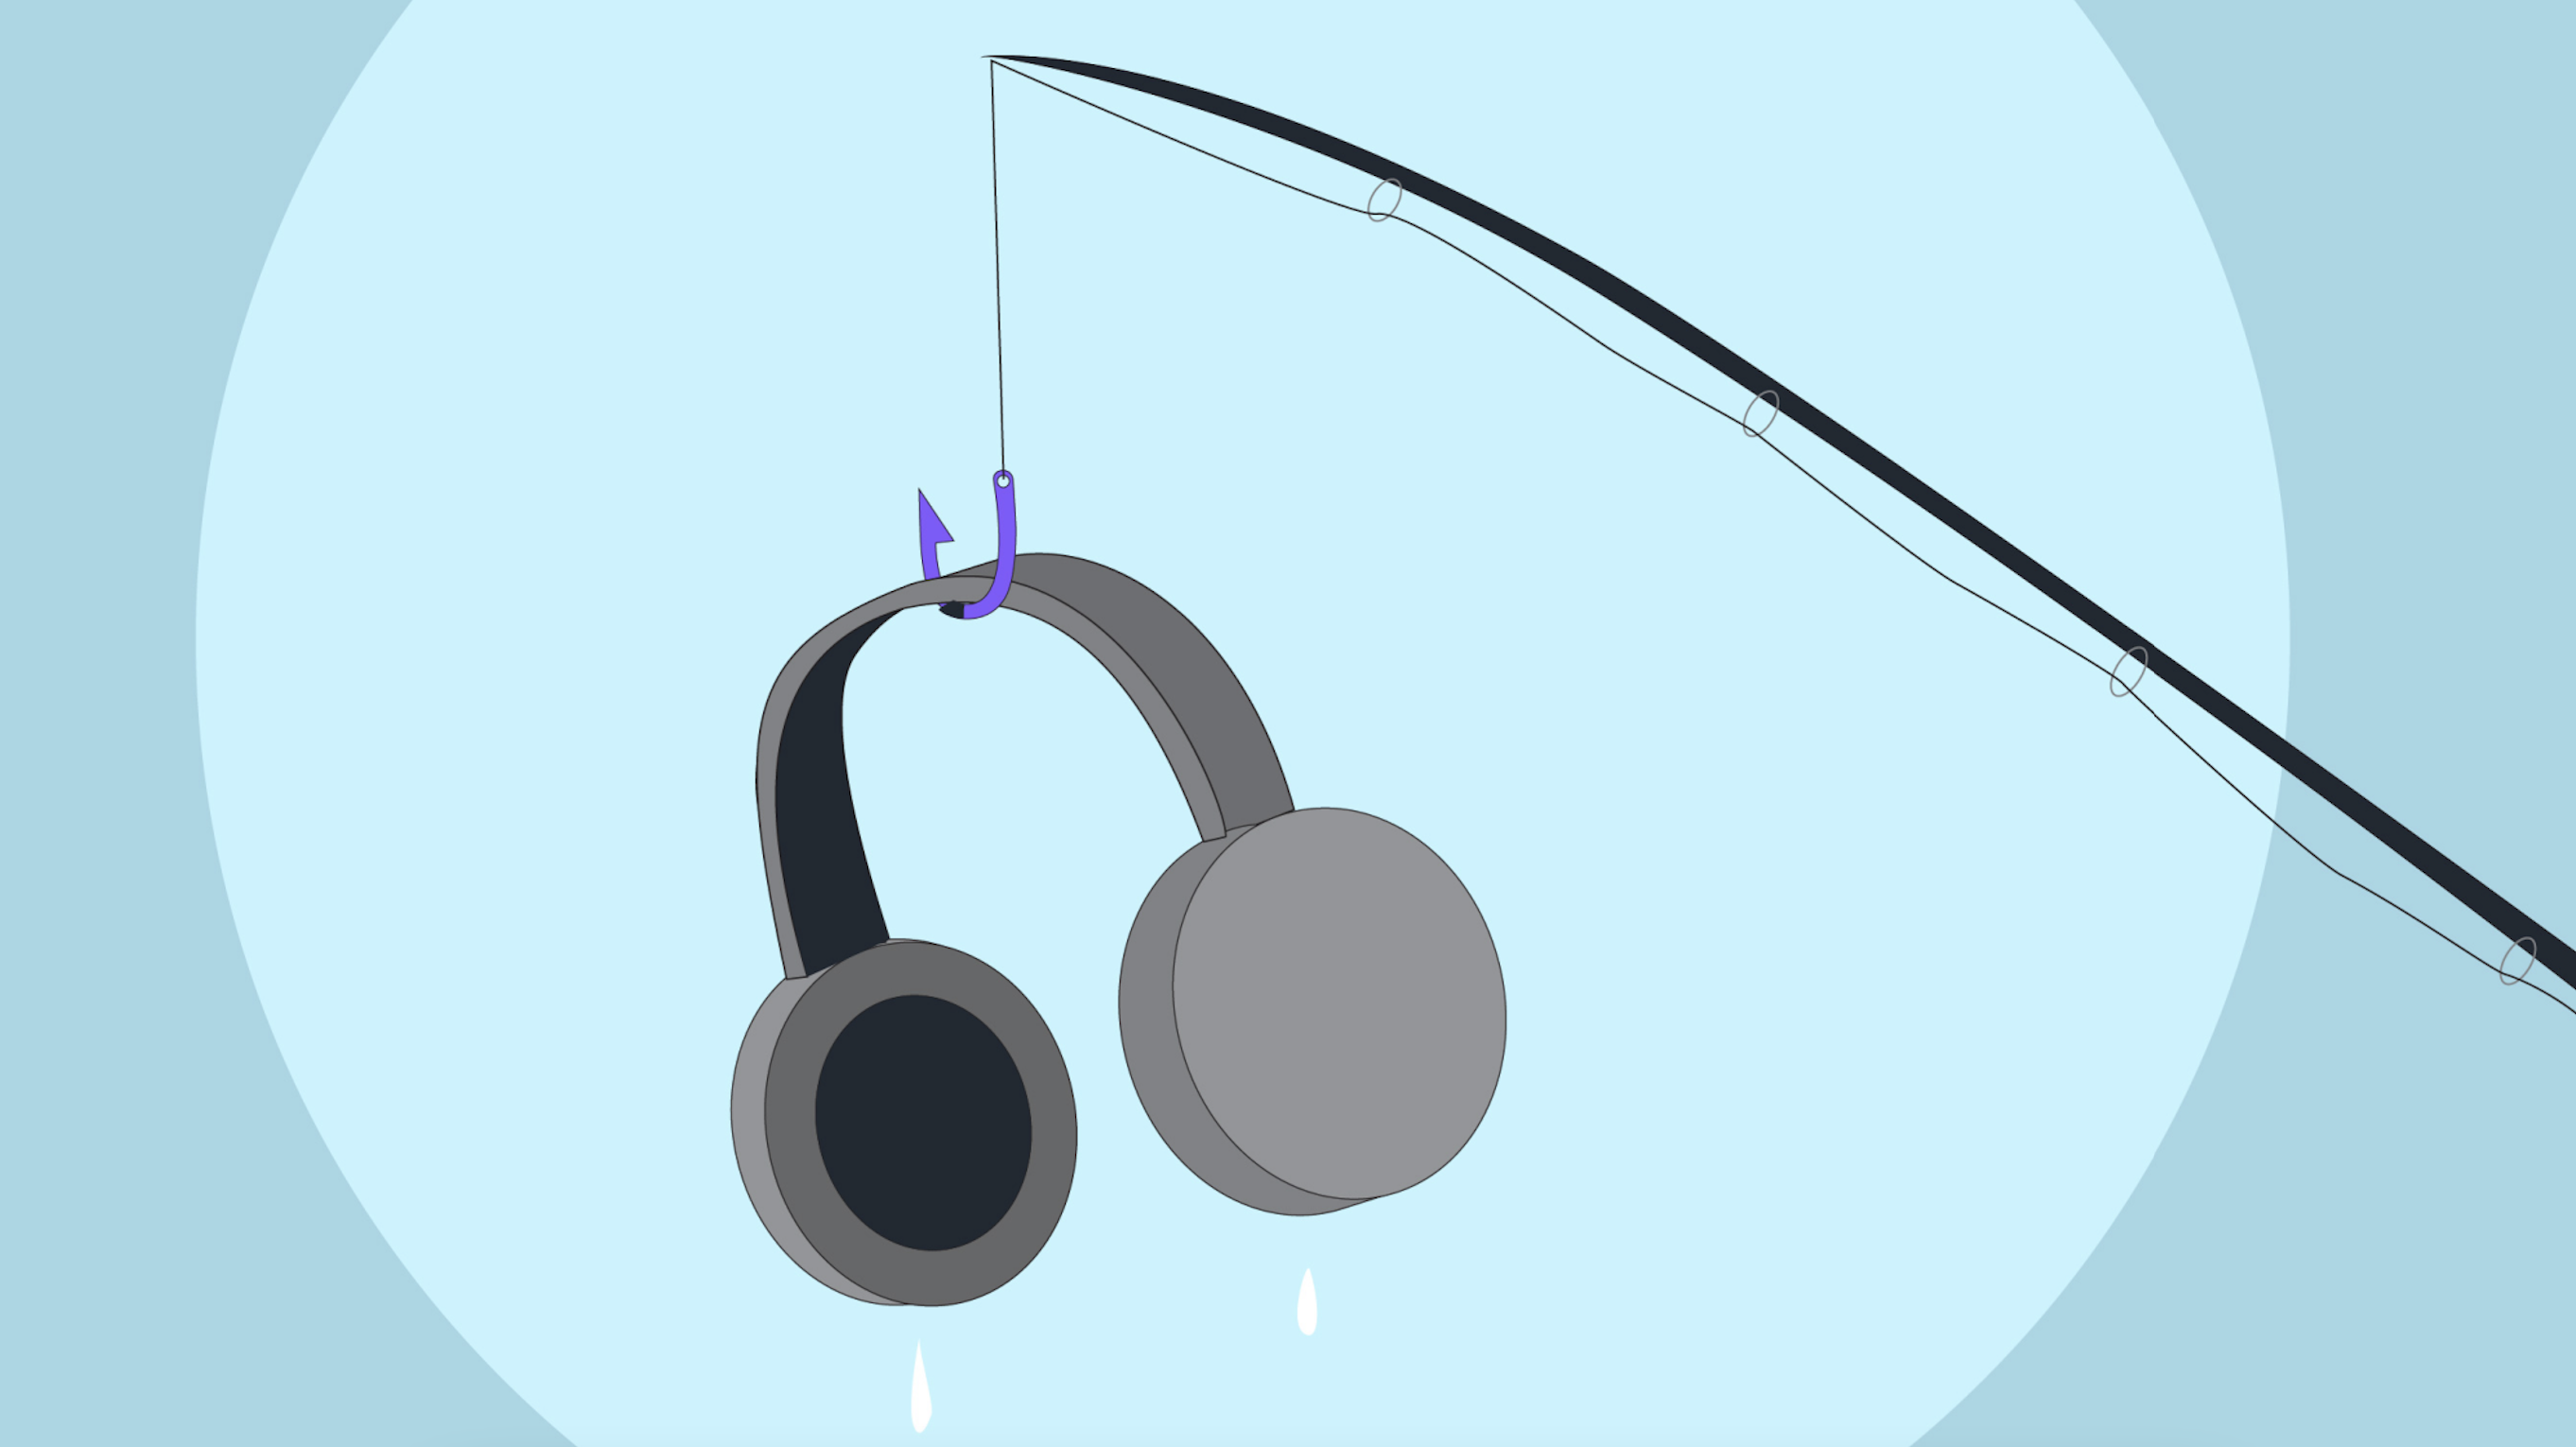 Illustration of a fishing rod catching headphones